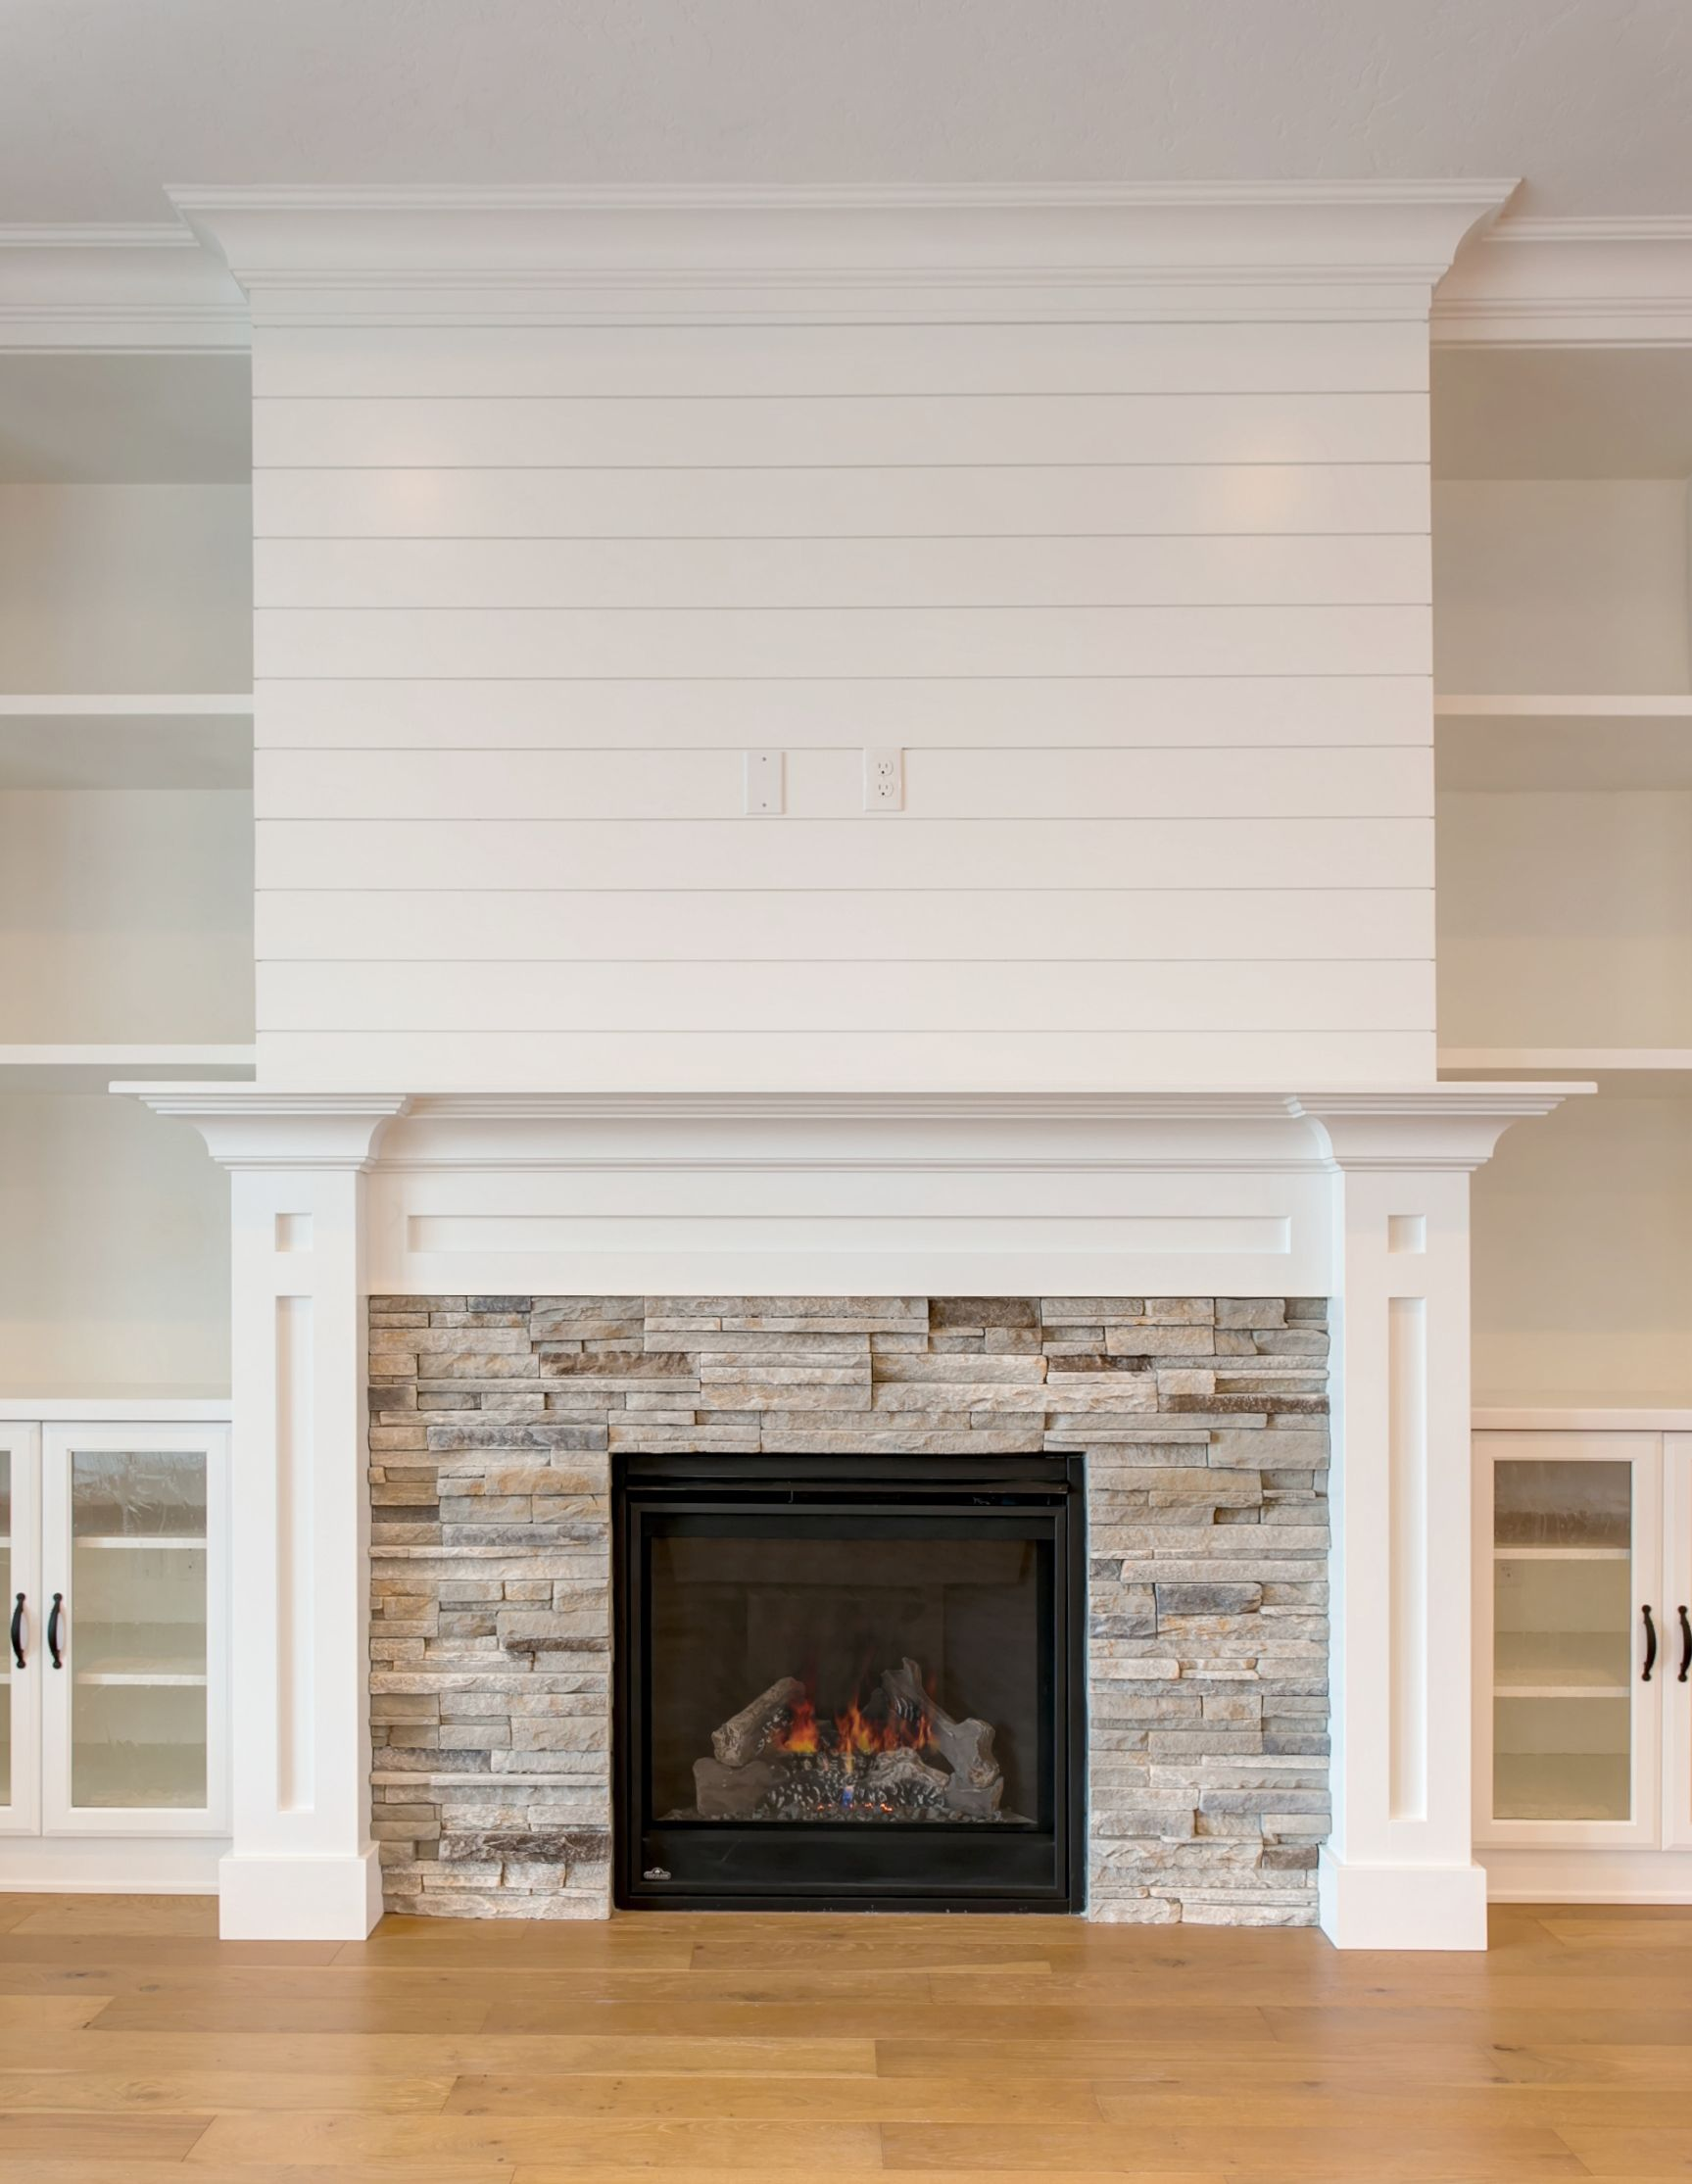 Building New Homes In Tri Cities Washington Fireplace Tile Surround Stone Fireplace Surround White Stone Fireplaces